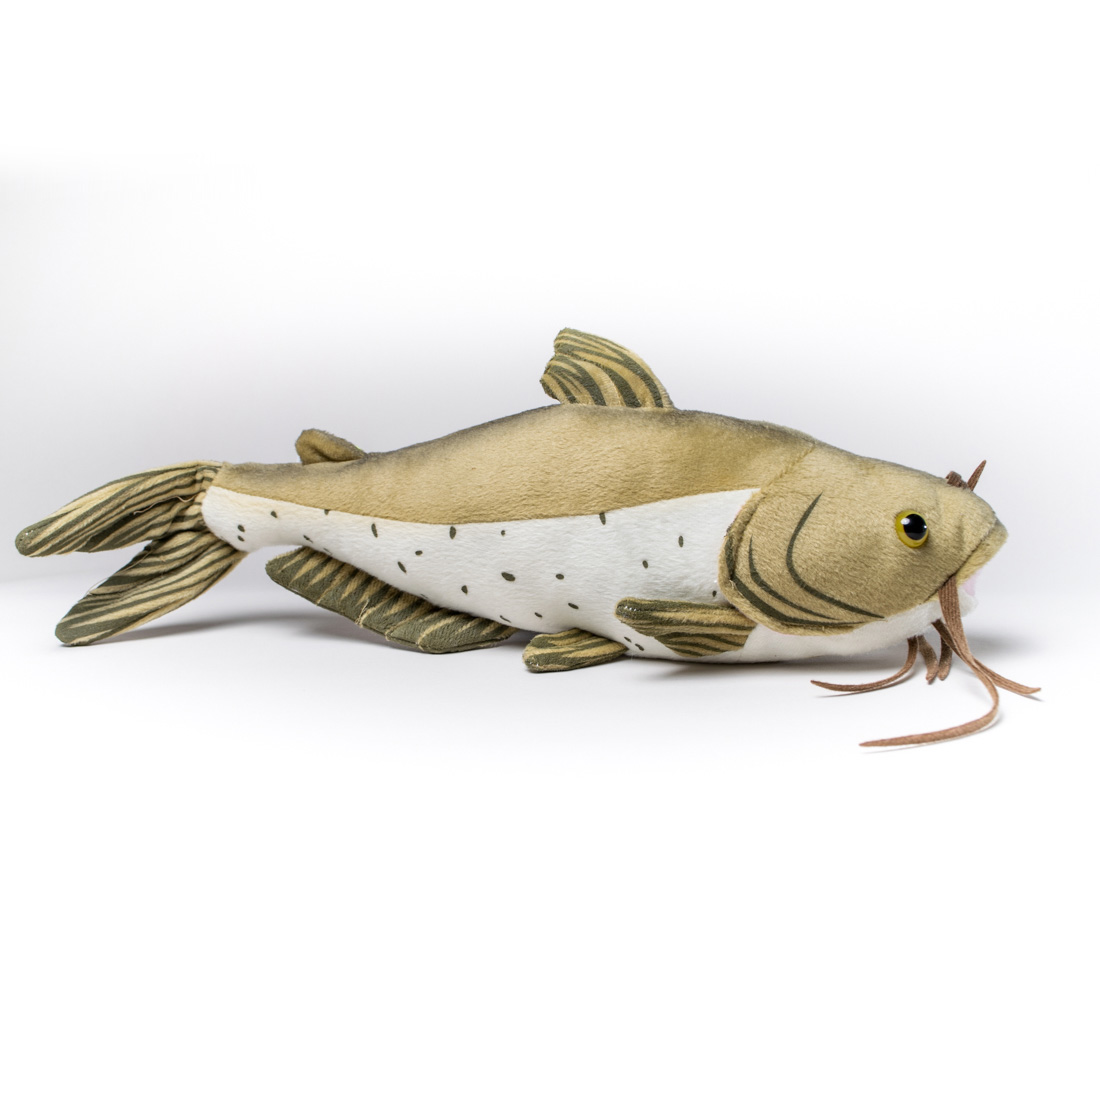 attachment-https://urbanislander.co.jp/wp-content/uploads/2016/05/ProductShots_channelcatfish2.jpg